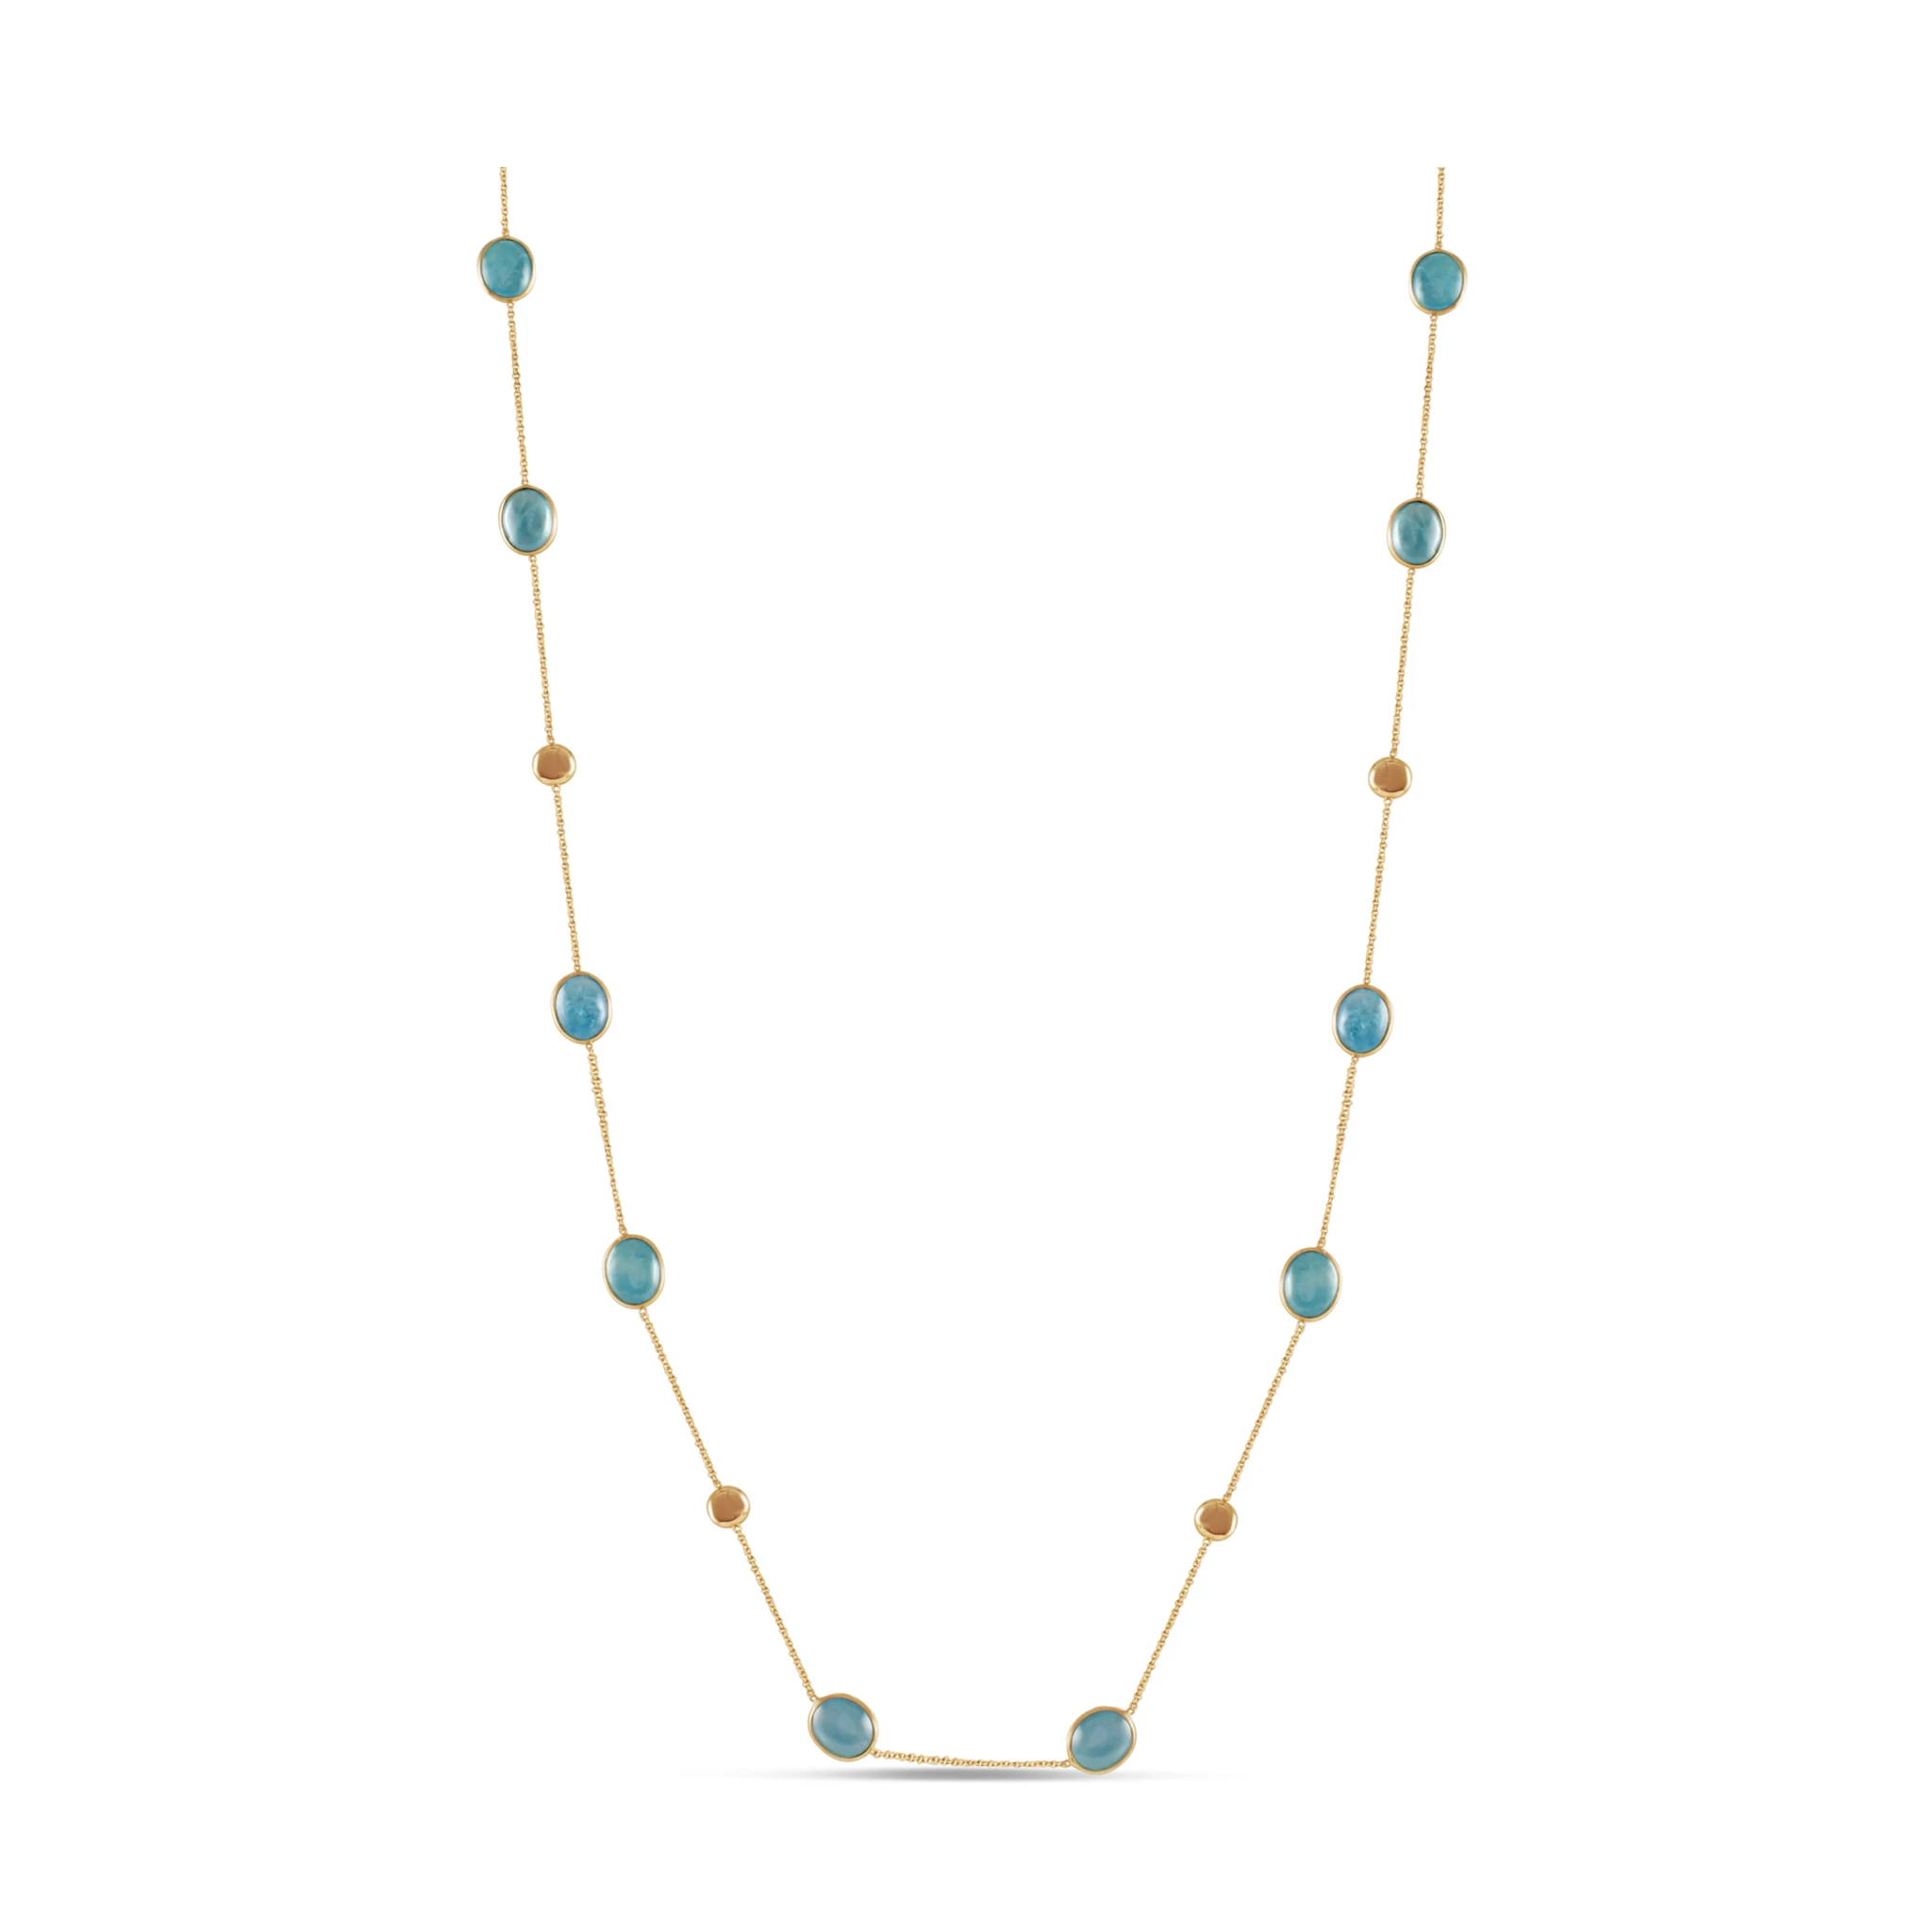 Aquamarine Long Necklace In 18K Yellow Gold